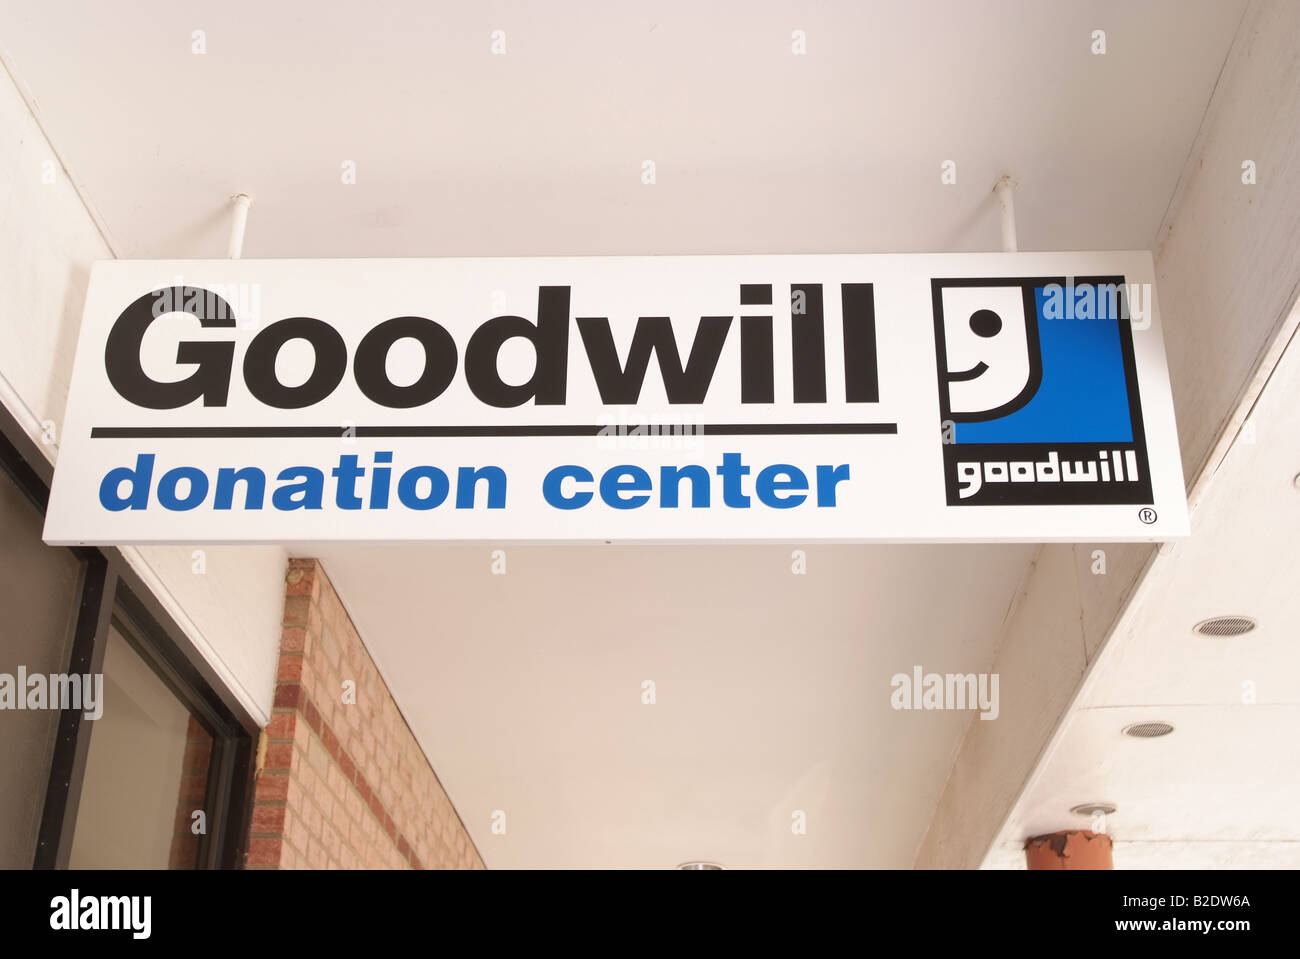 Goodwill industries donation collection center in Maryland - Stock Image